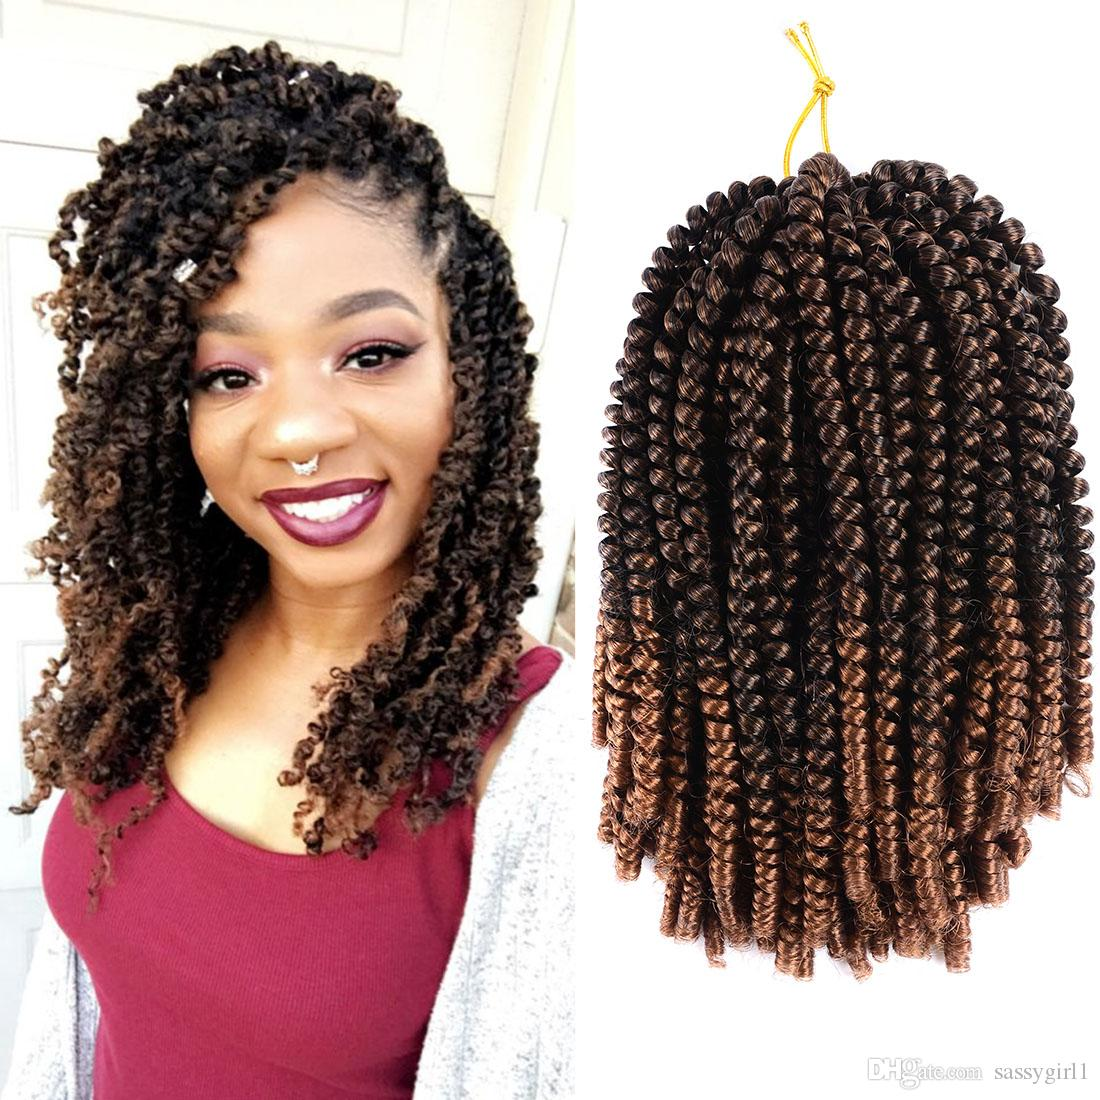 30Roots/Pcs Curly Crochet Hair Extensions Spring Twist Hair Kinky Twist Braiding Synthetic Hair For Braid 8 Inch